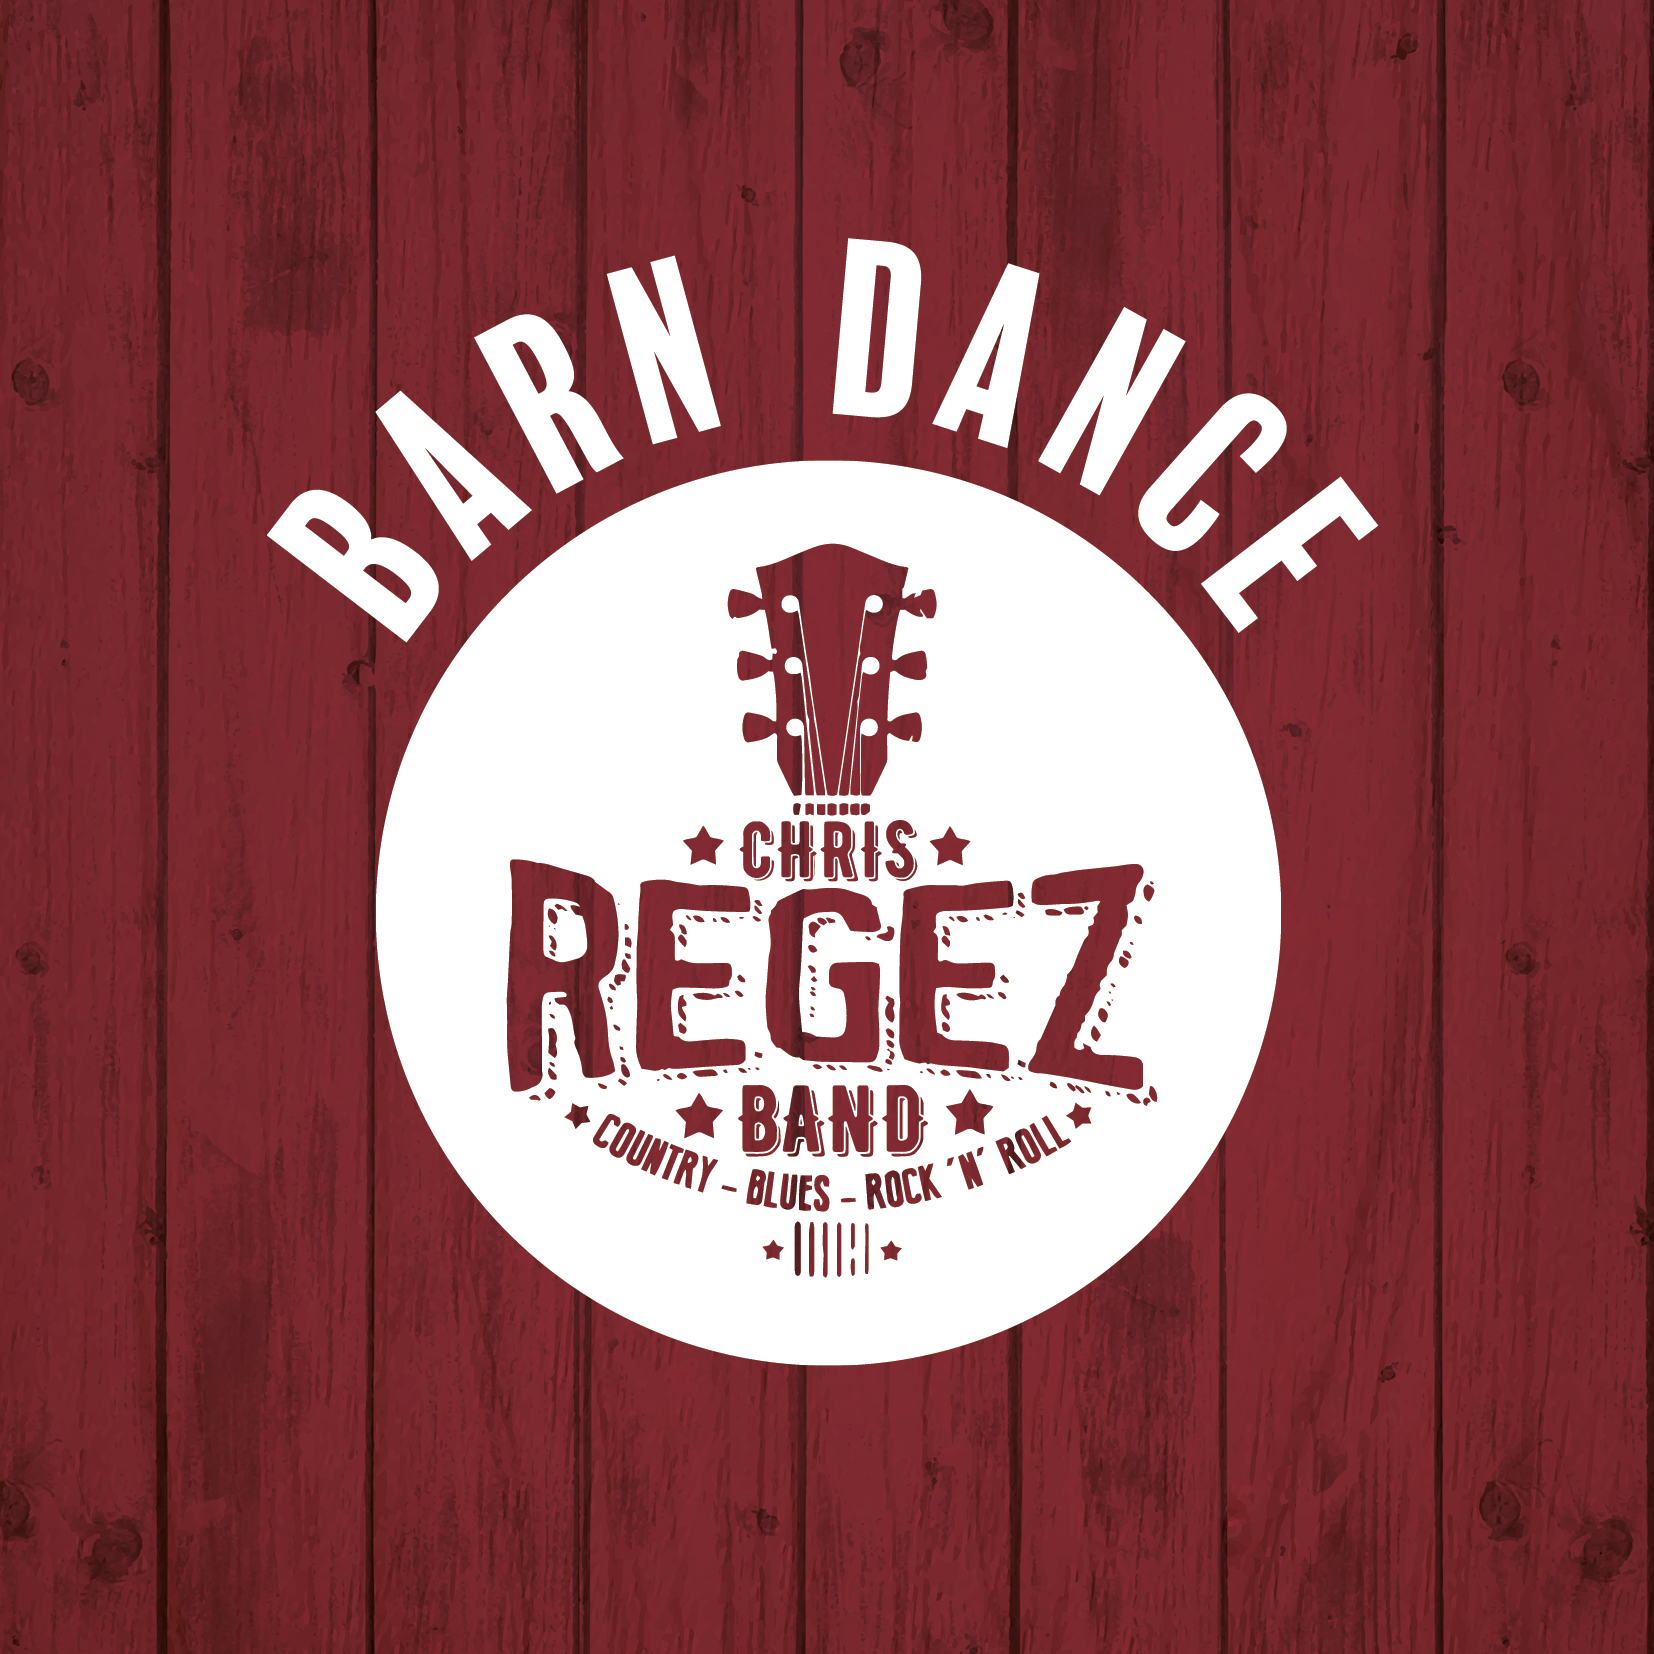 Chris Regez Band